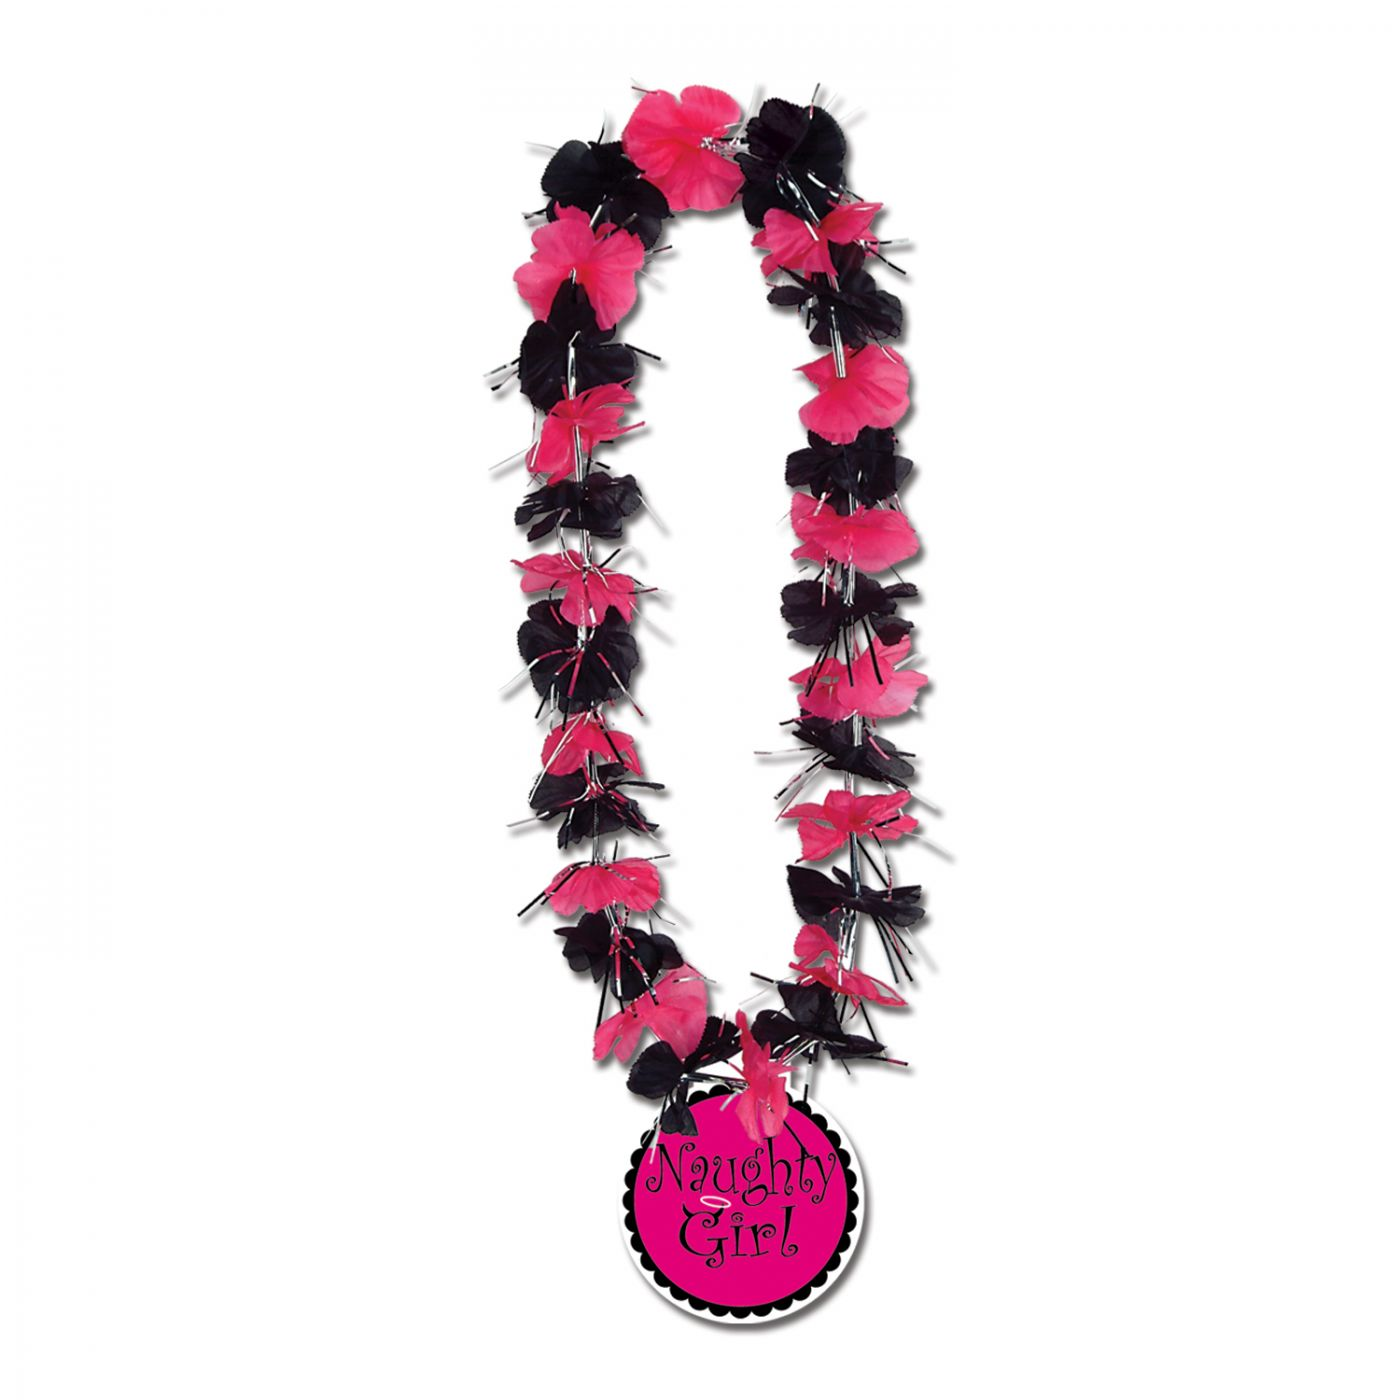 Party Lei w/Naughty Girl Medallion image